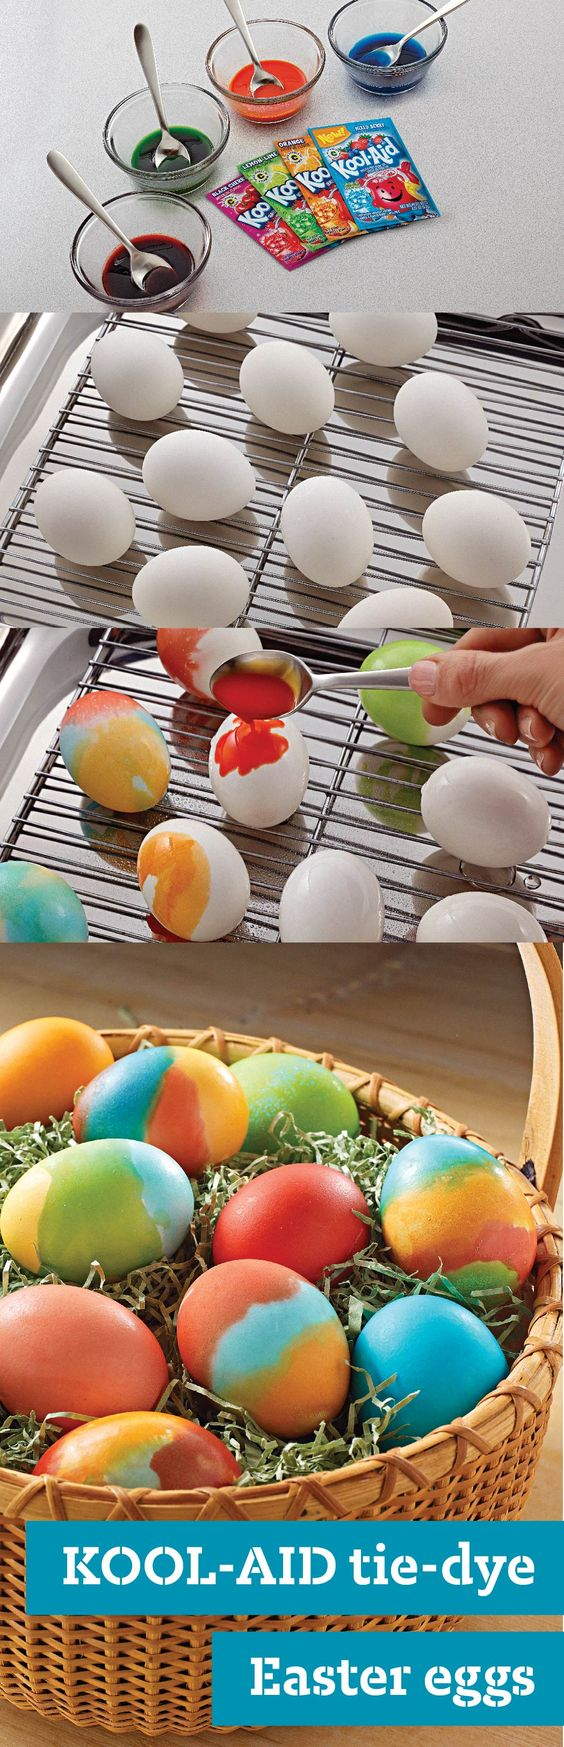 KOOL-AID Tie-Dye Easter Eggs – As cool as they are, Tie-Dye Easter Eggs are super easy to make with a few different KOOL-AID packets and hard-cooked eggs—especially with these step-by-step instructions! This kid-friendly craft will make the whole family's holiday a little more colorful. Click here for more tips on how to make coloring Easter eggs extra special.: